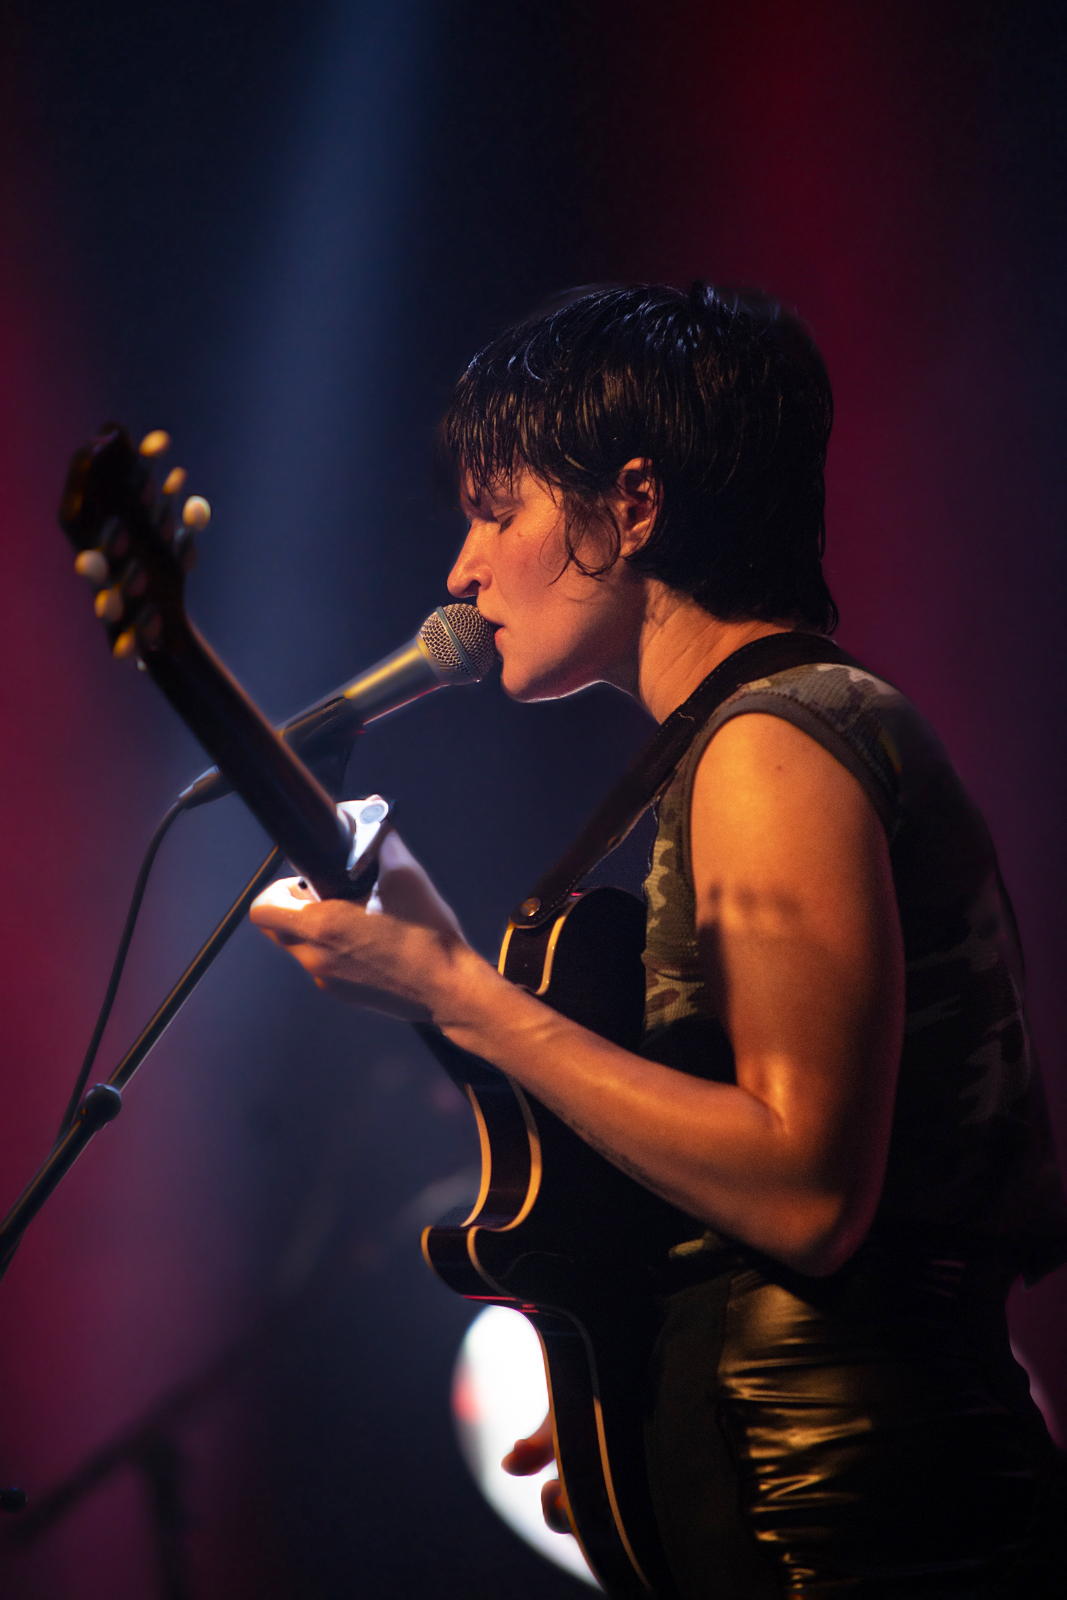 Big Thief @ AB Brussel 2020 (Robin Dua)